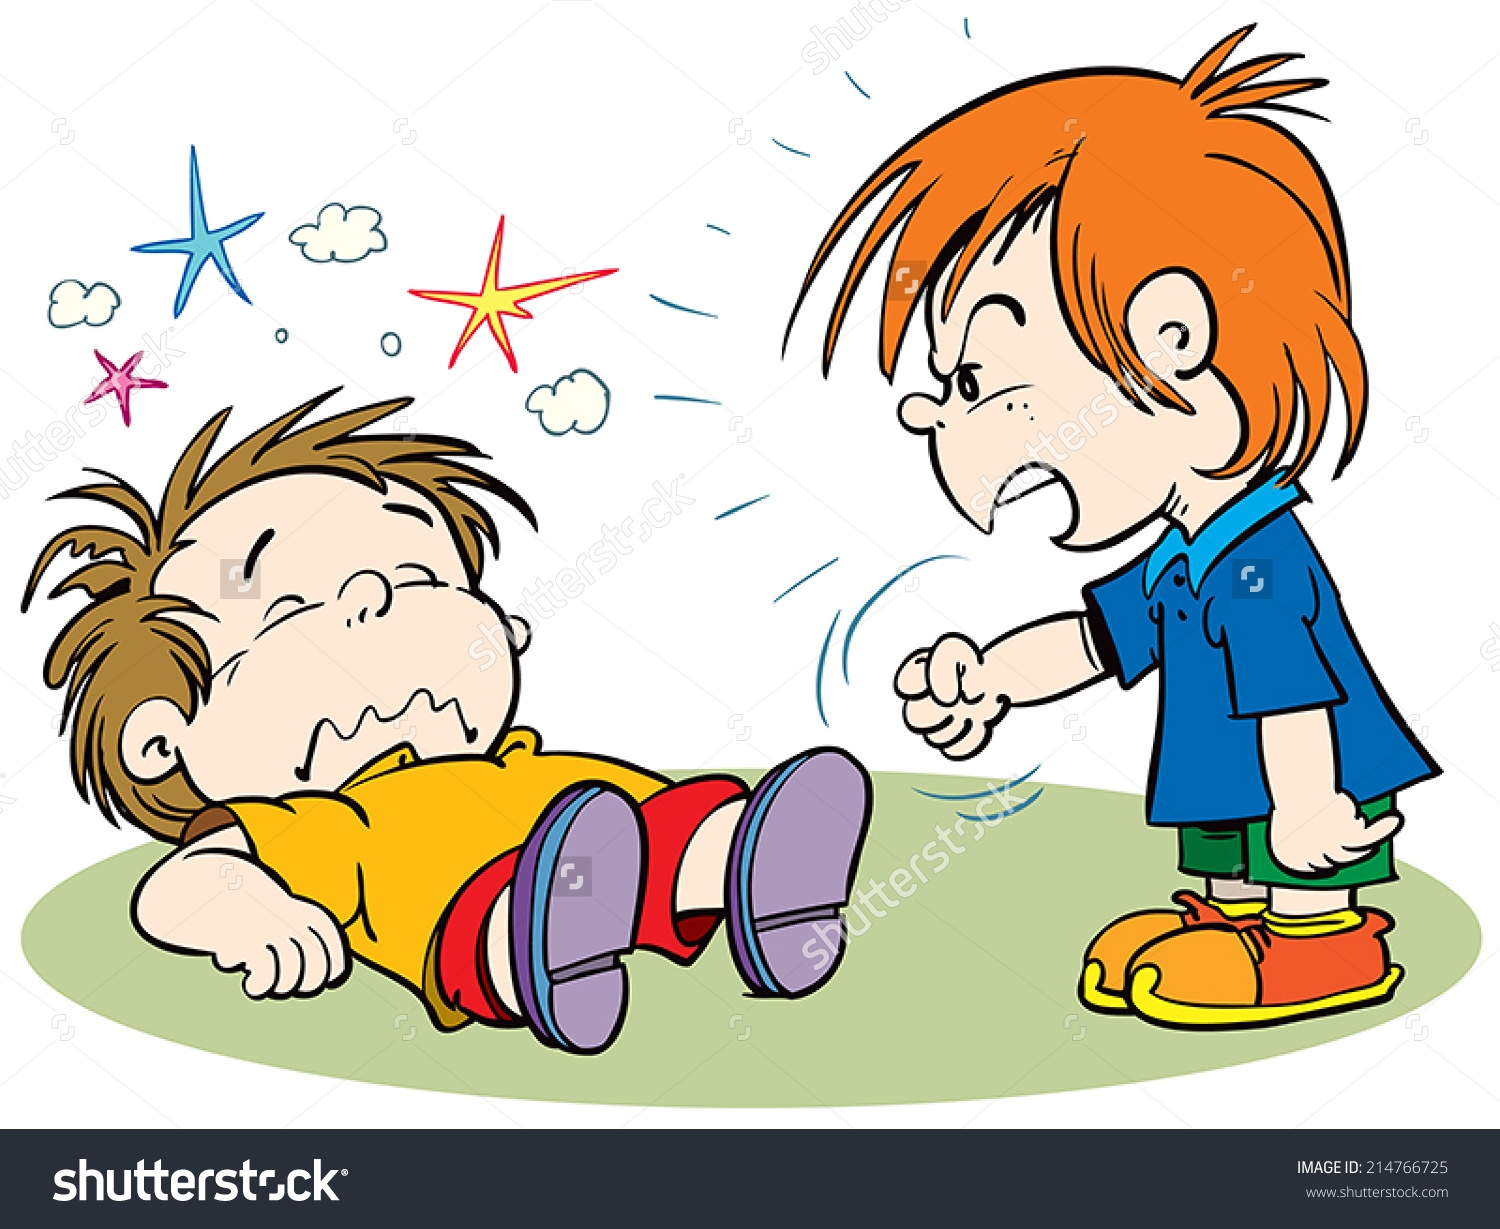 Kids fighting clipart.